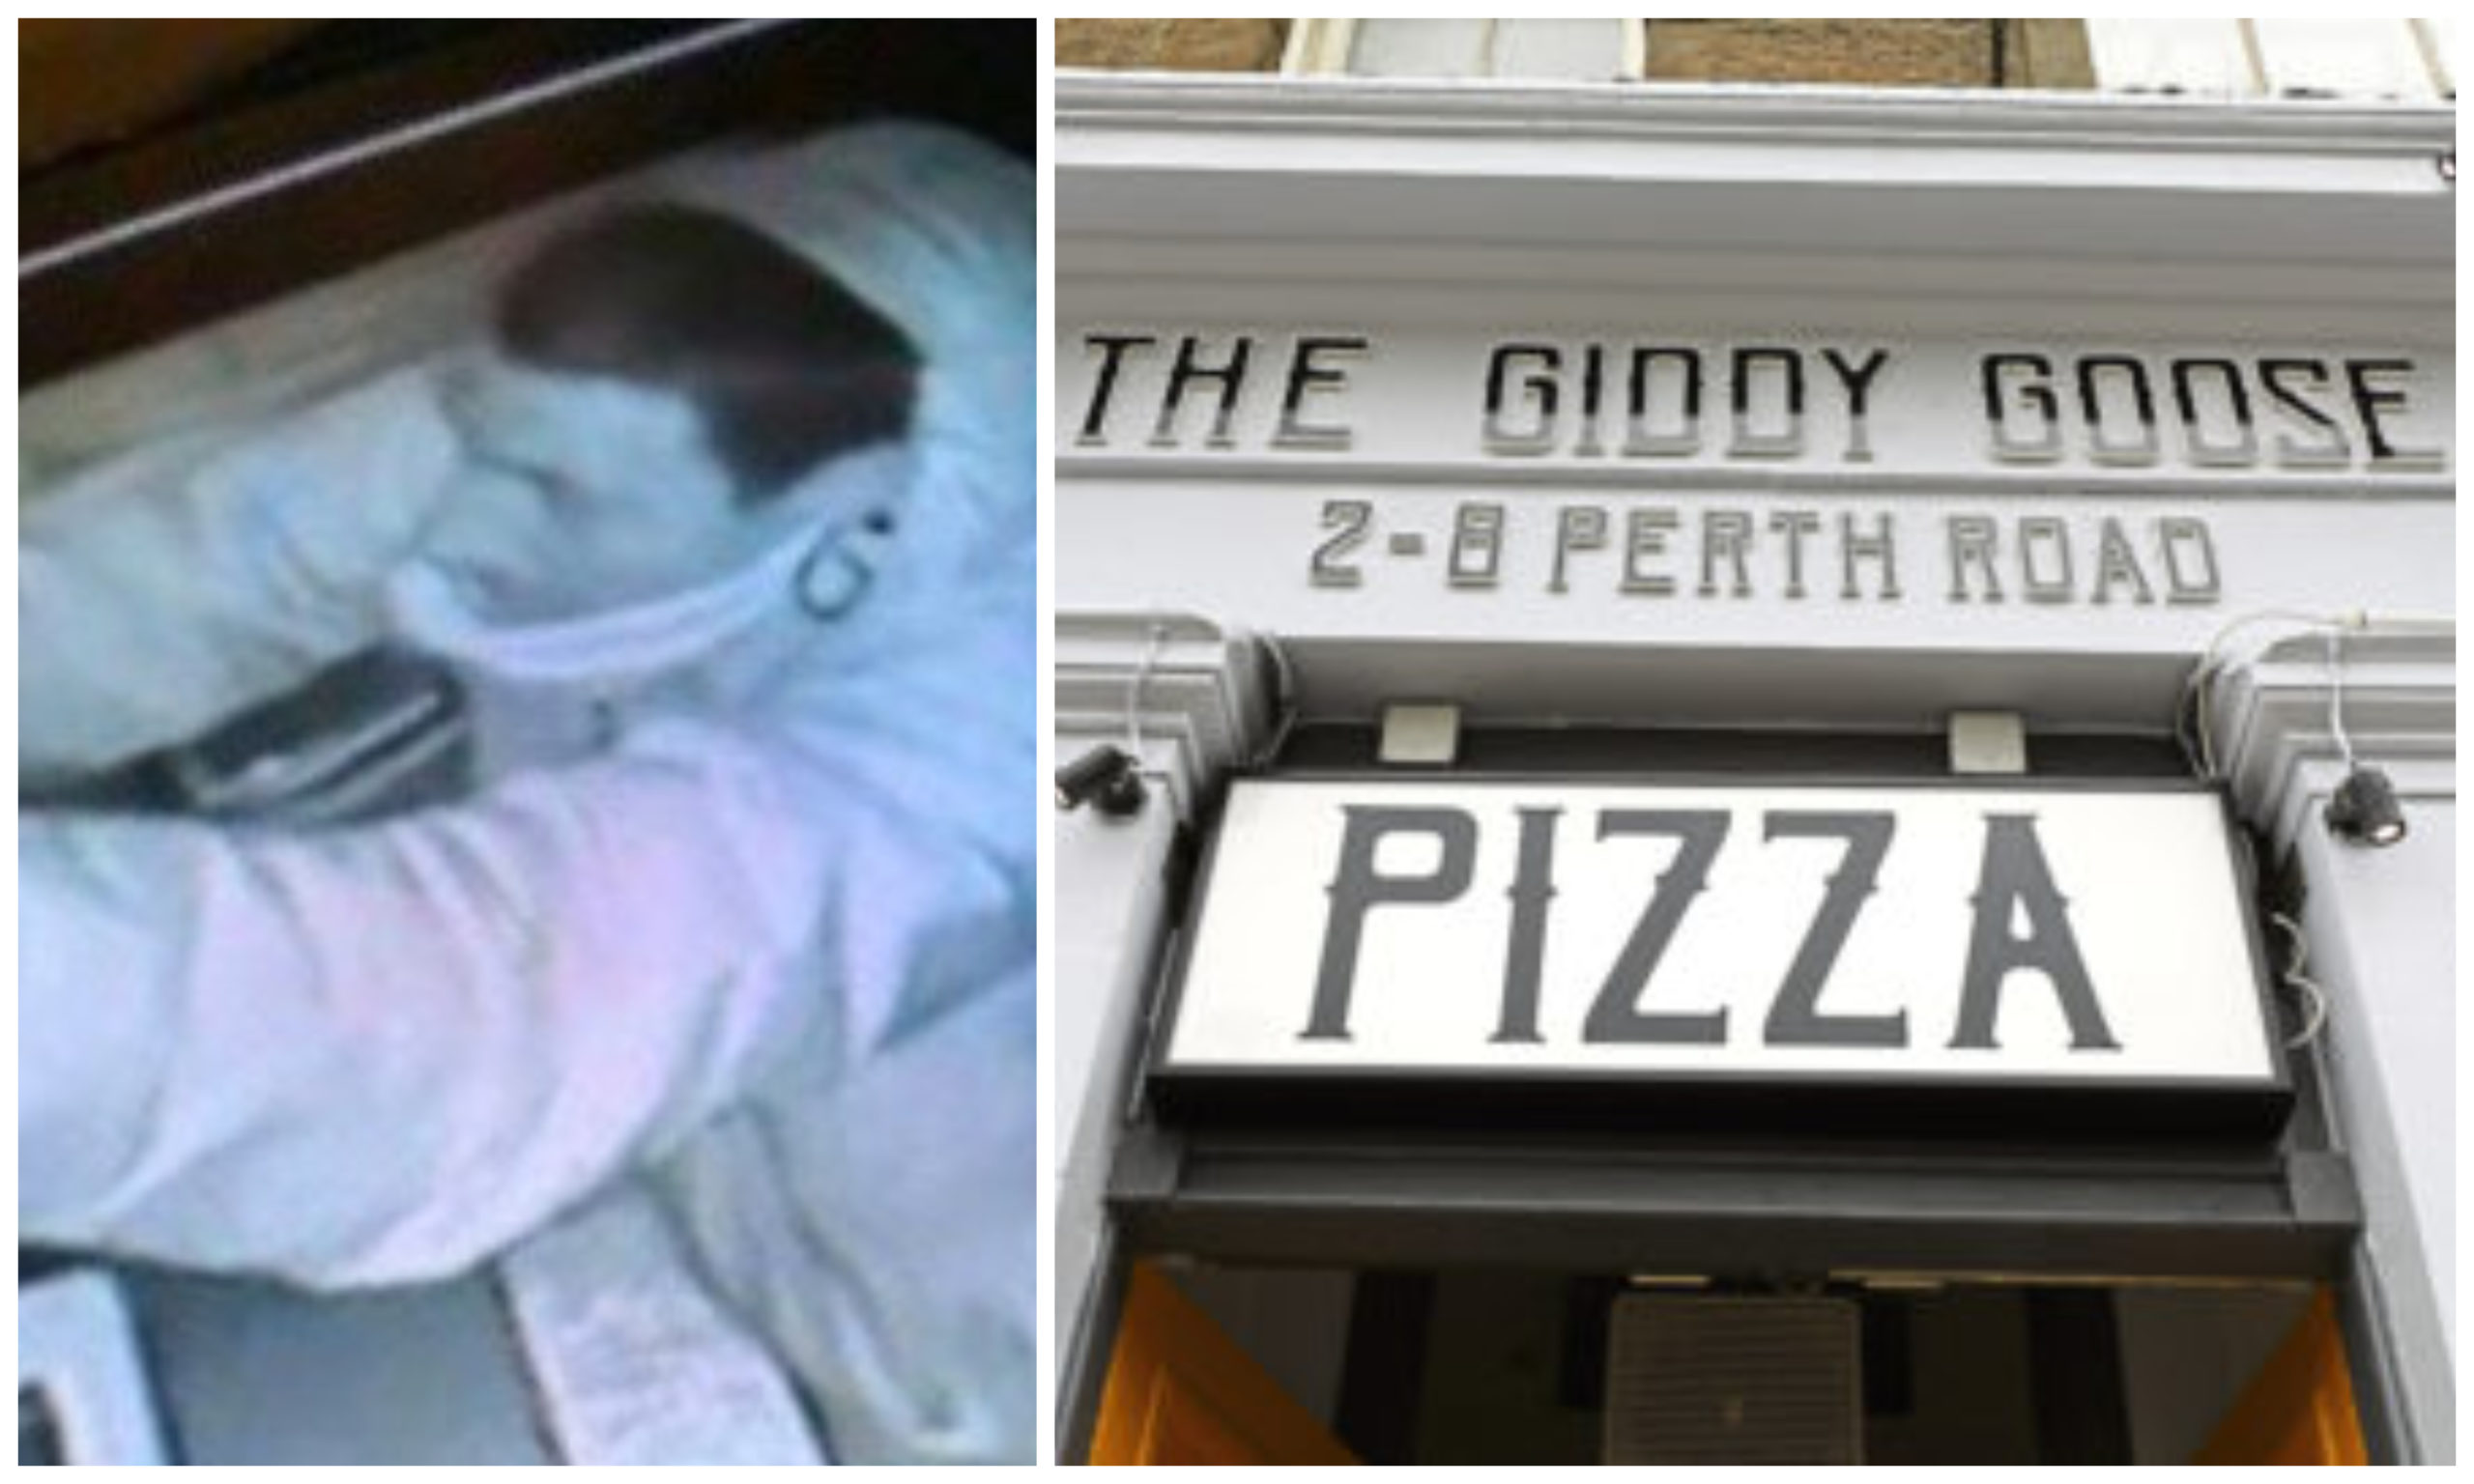 The thief was caught on CCTV at The Giddy Goose on Perth Road, Dundee.